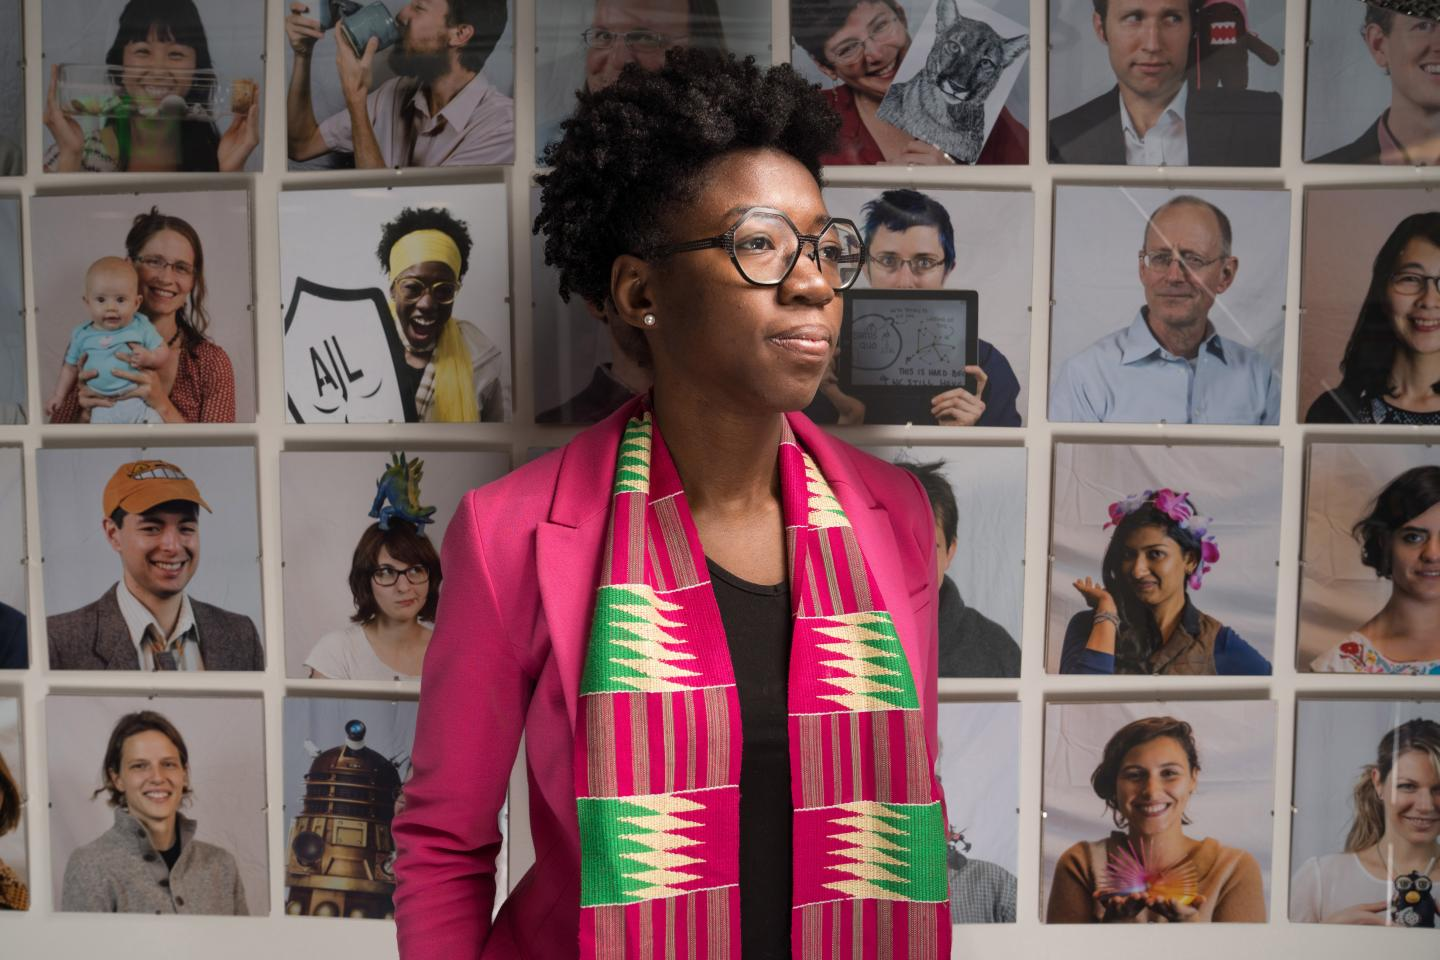 This is Joy Buolamwini, a researcher in the MIT Media Lab's Civic Media group. (Source: Bryce Vickmark)